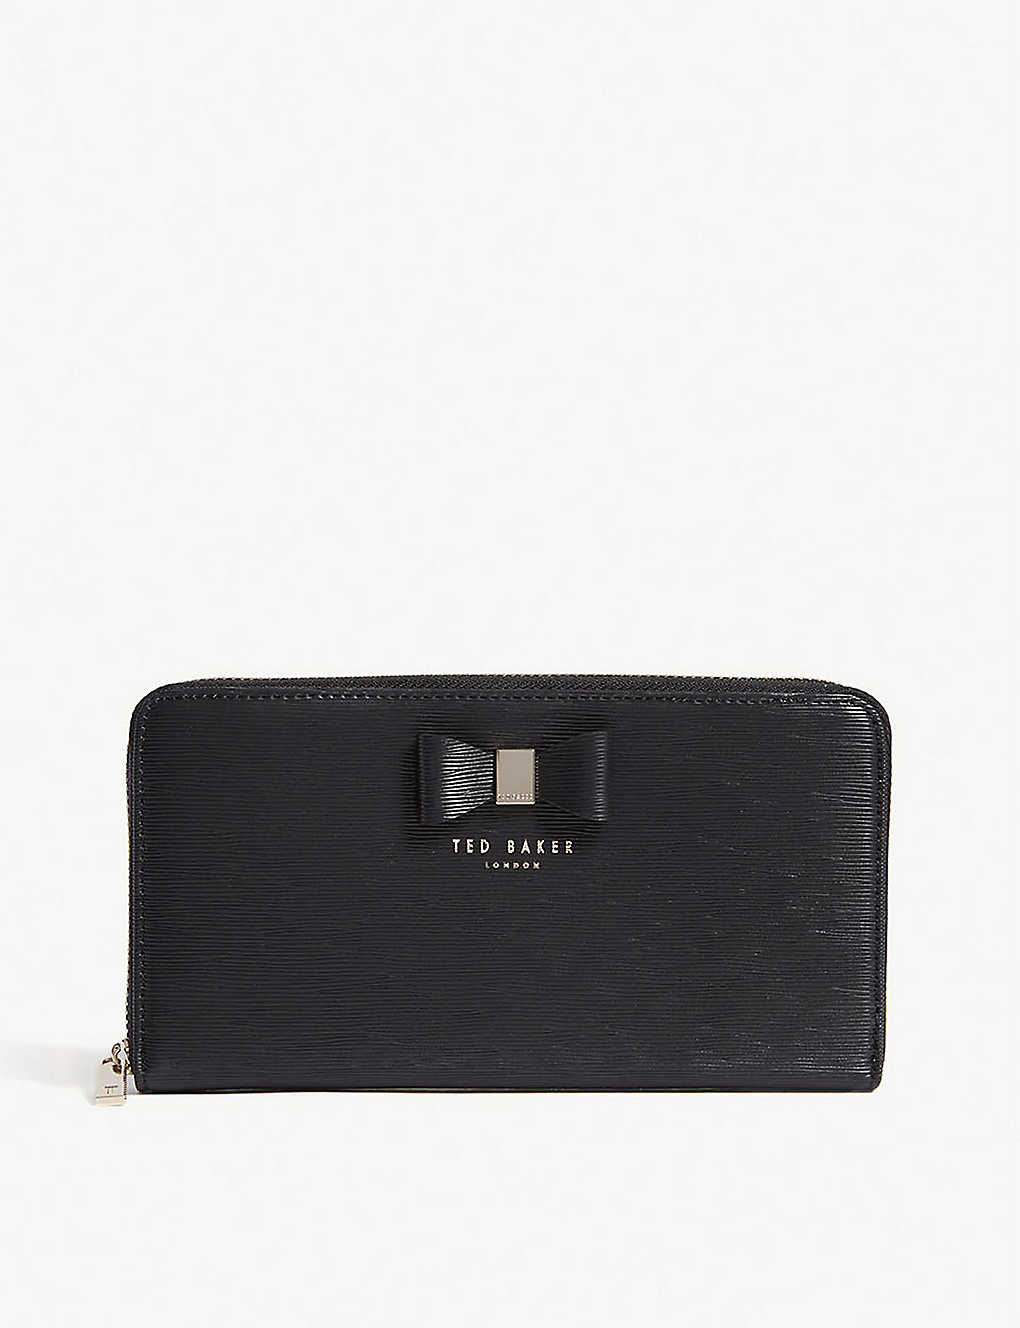 8a9ea889edc TED BAKER - Peony zip around matinee wallet | Selfridges.com